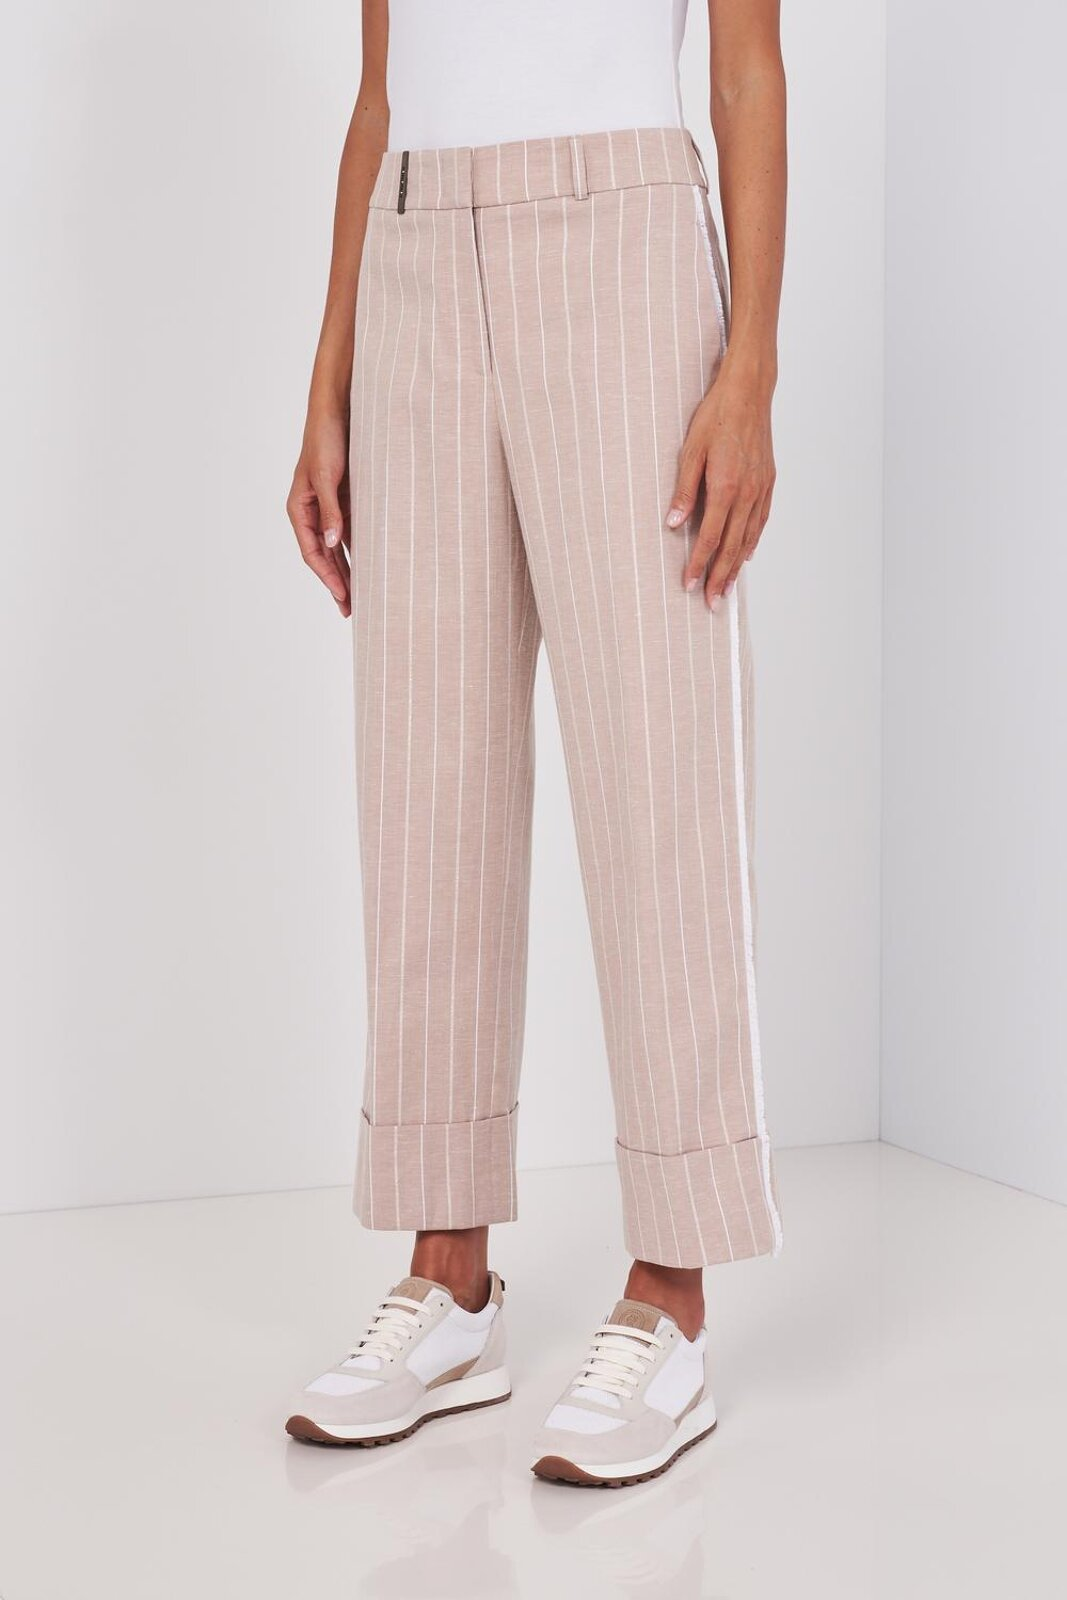 Slightly Stretch Cotton And Linen Wide Leg Pants. Striped Pattern, Two Side Pockets And Two Back Welt Pockets, Side Band, High Waist, Zip And Hook Closure. Wide fit. - Peserico